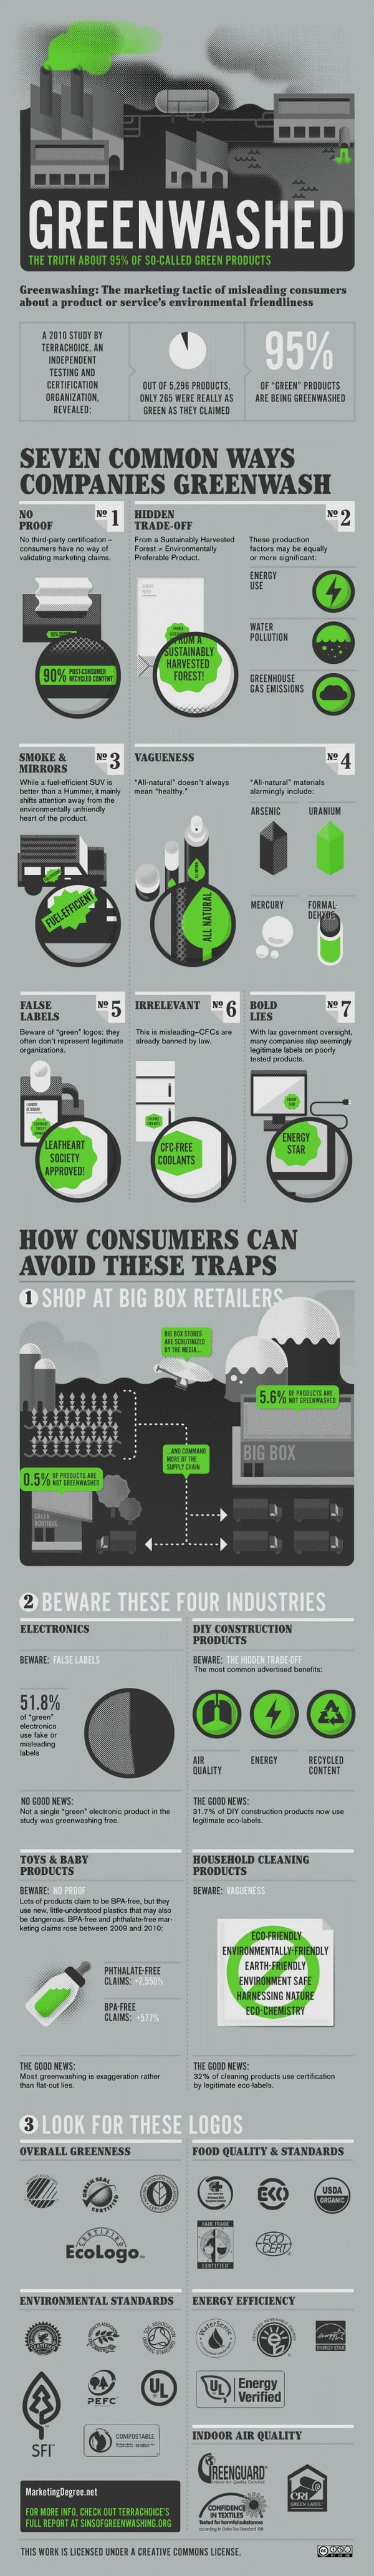 Greenwashing Exposed Infographic